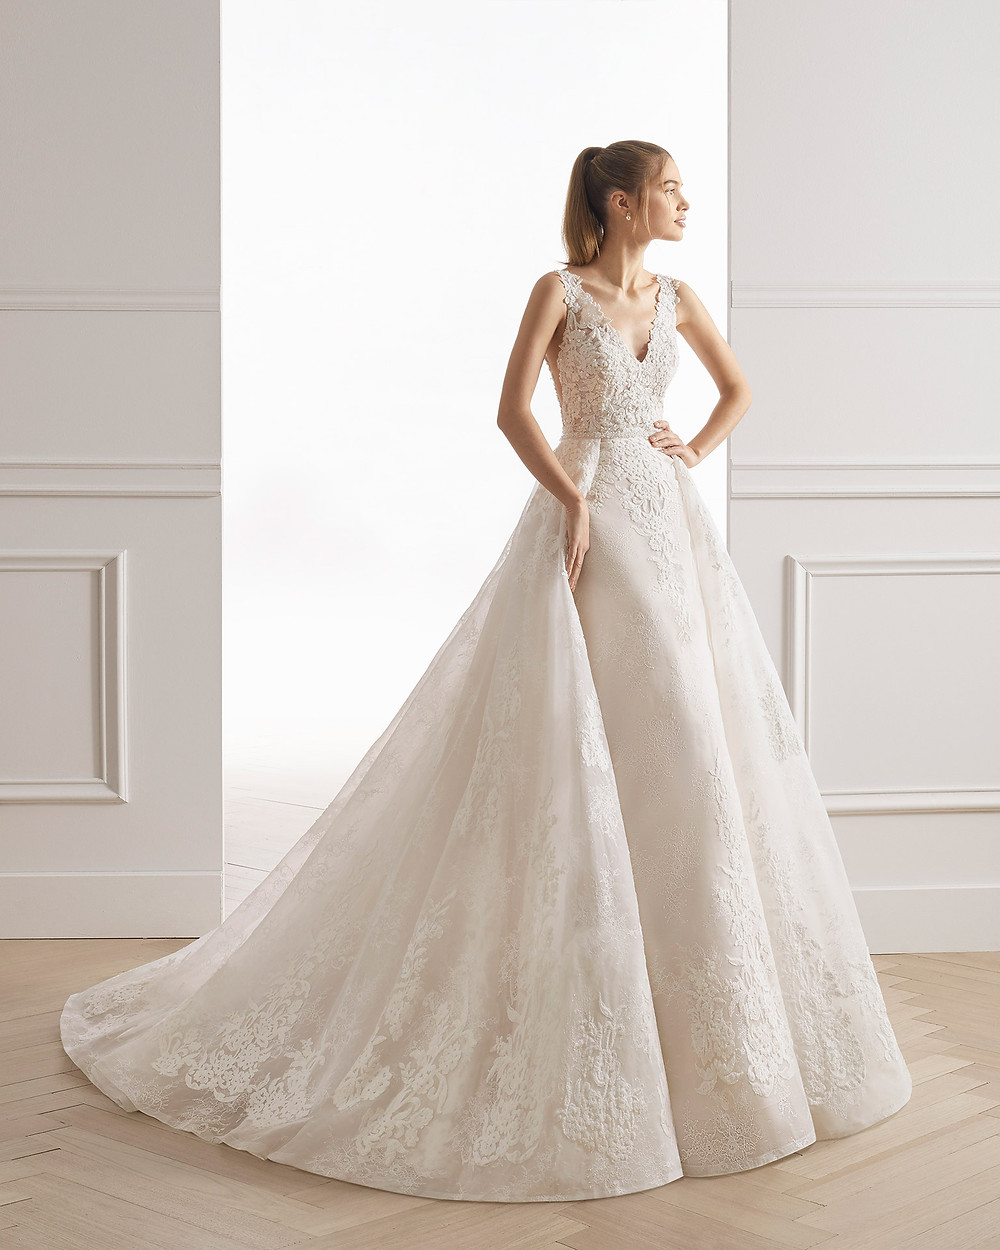 An Aire Barcelona 2020 romantic lace mermaid wedding dress with a detachable skirt and a v neckline